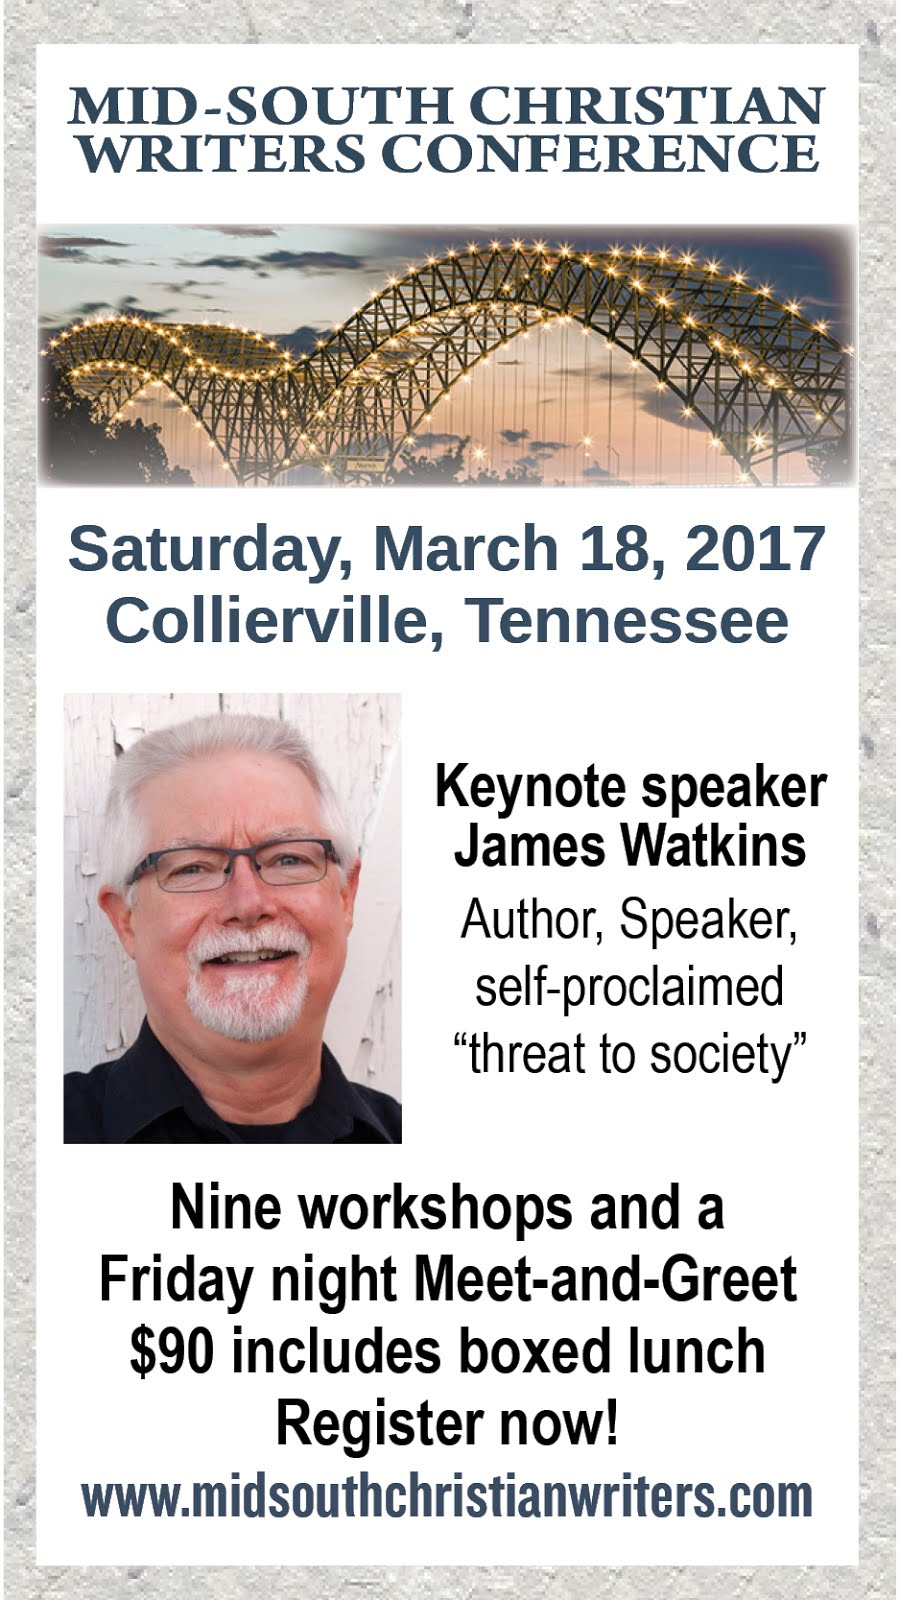 Don't Miss This Conference!